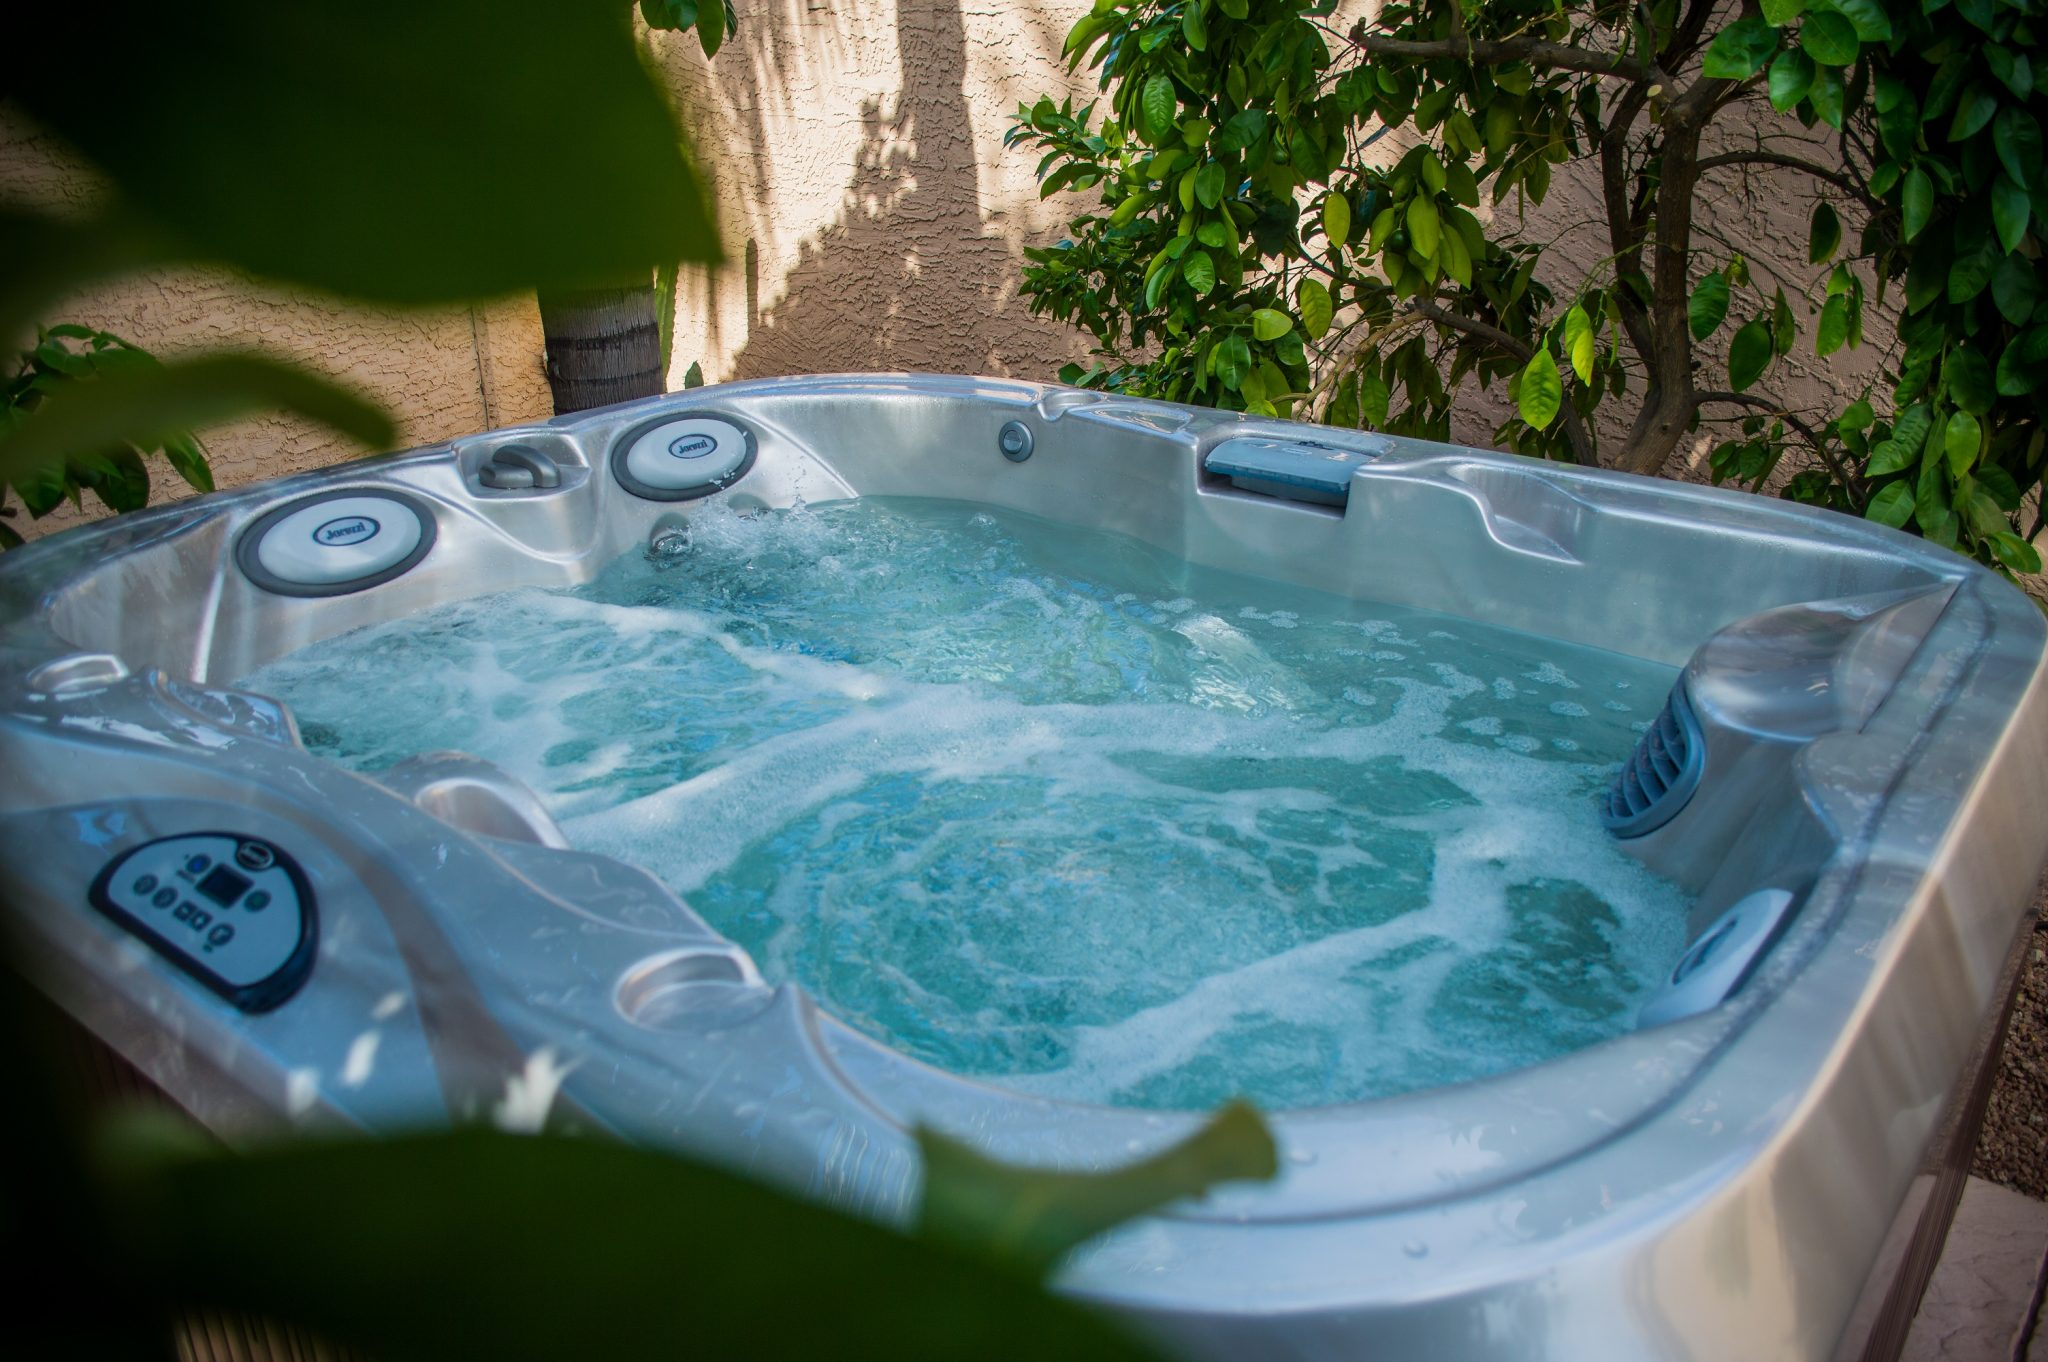 Outdoor Jacuzzi Hot Tub in Sarasota